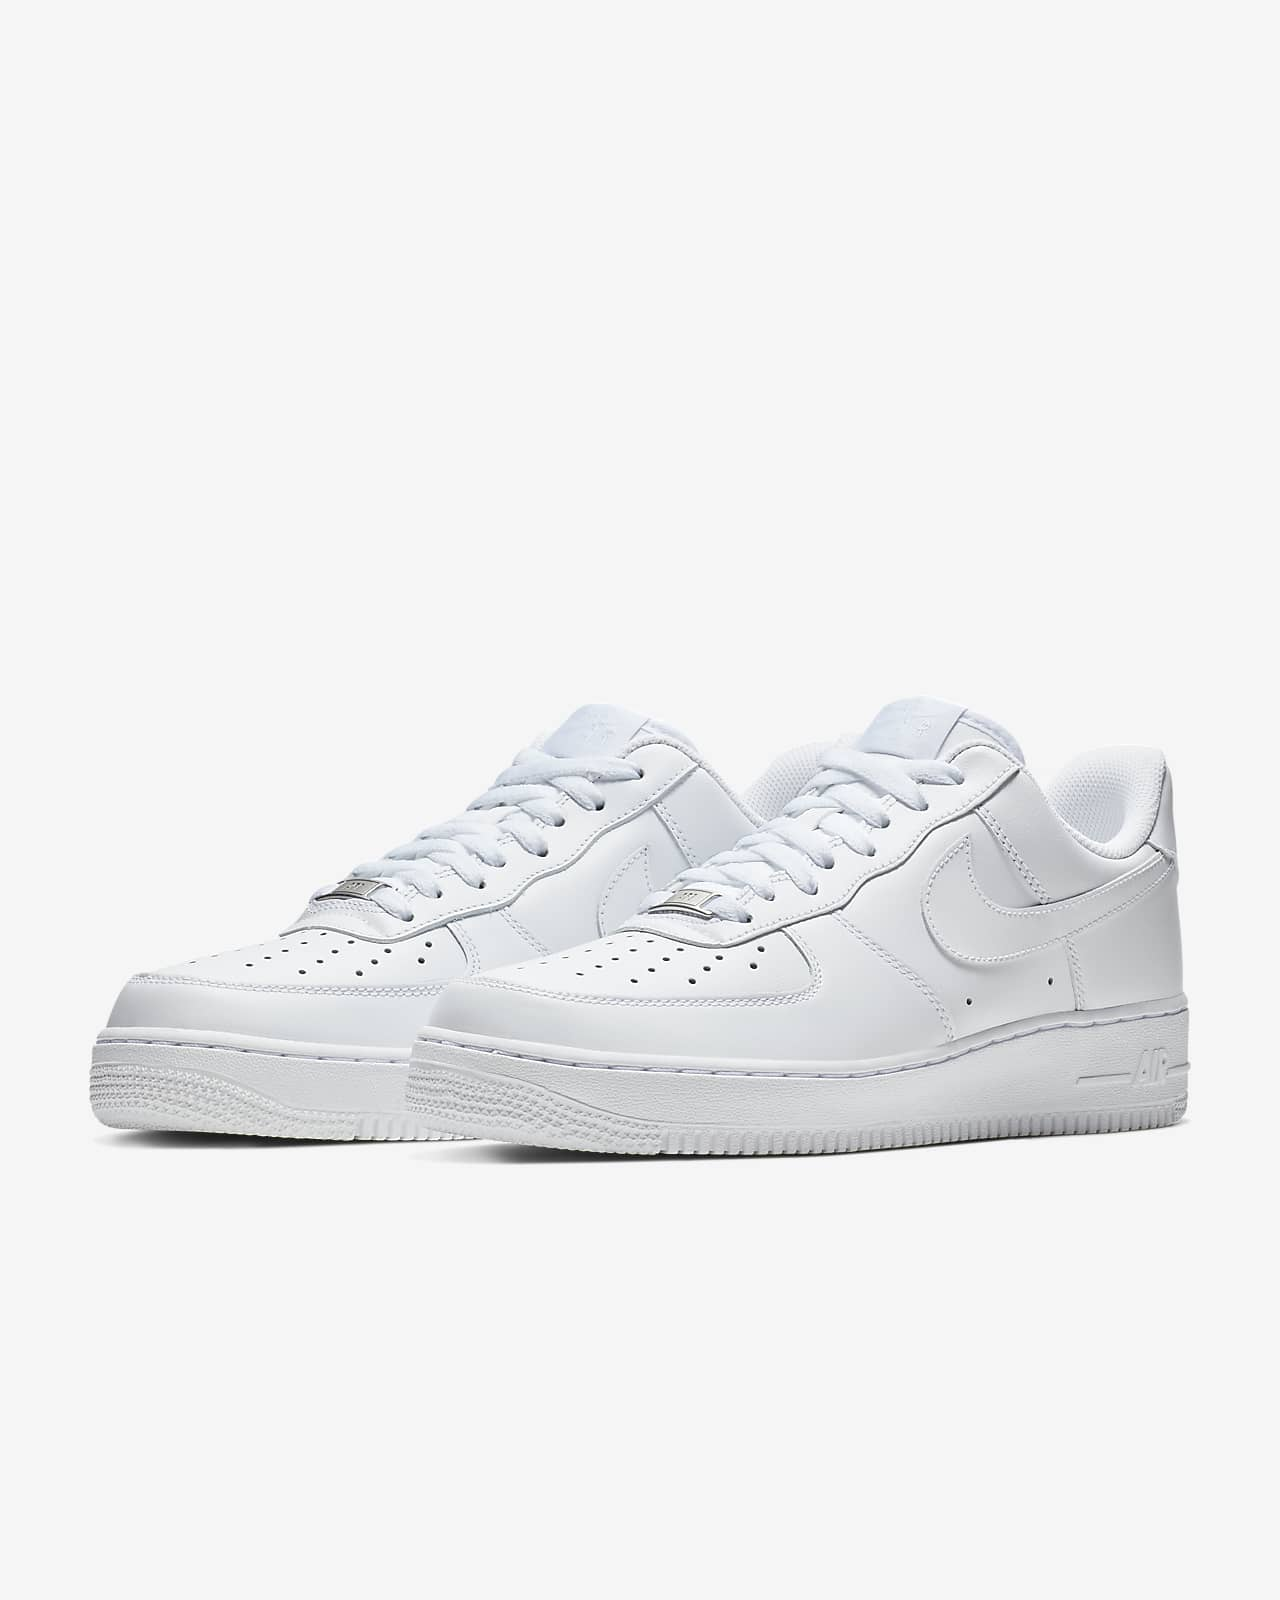 Brutal Brillante Visible  nike air force mujer mexico - 54% descuento - www.prodeni.org